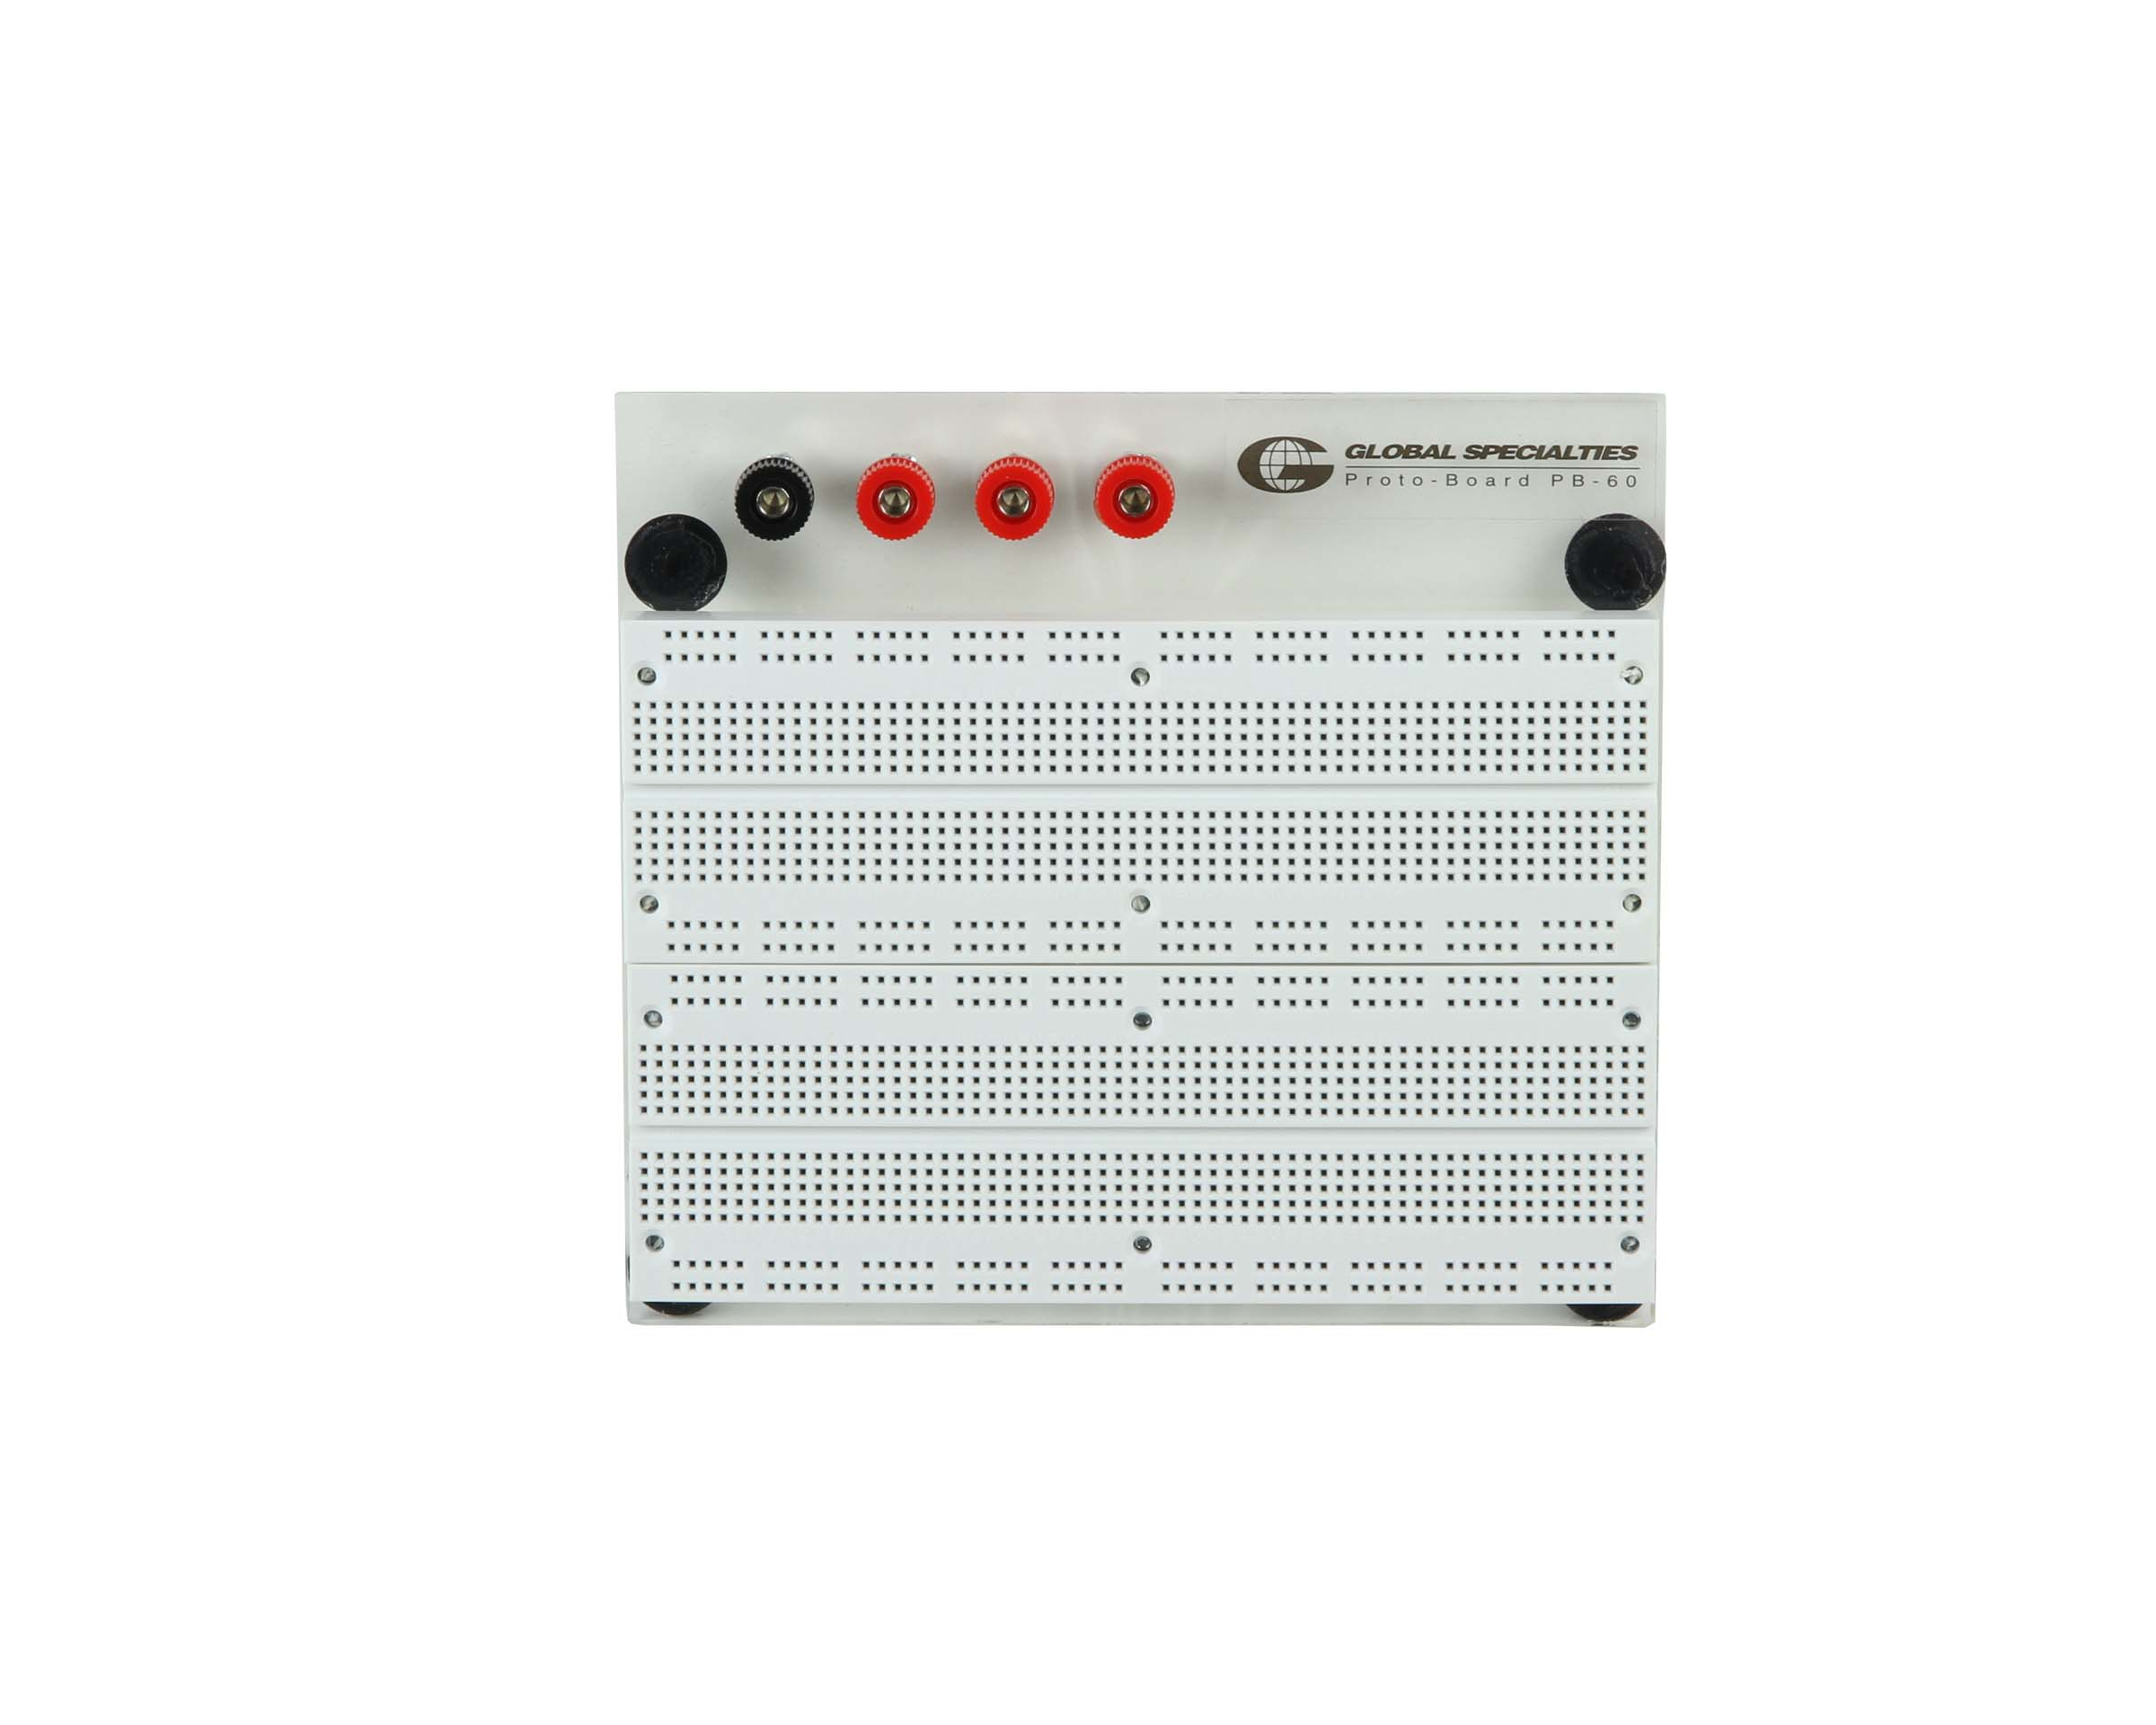 Click to preview image for the Global Specialties PB-60 Externally Powered 1680 Tie-Point Breadboard